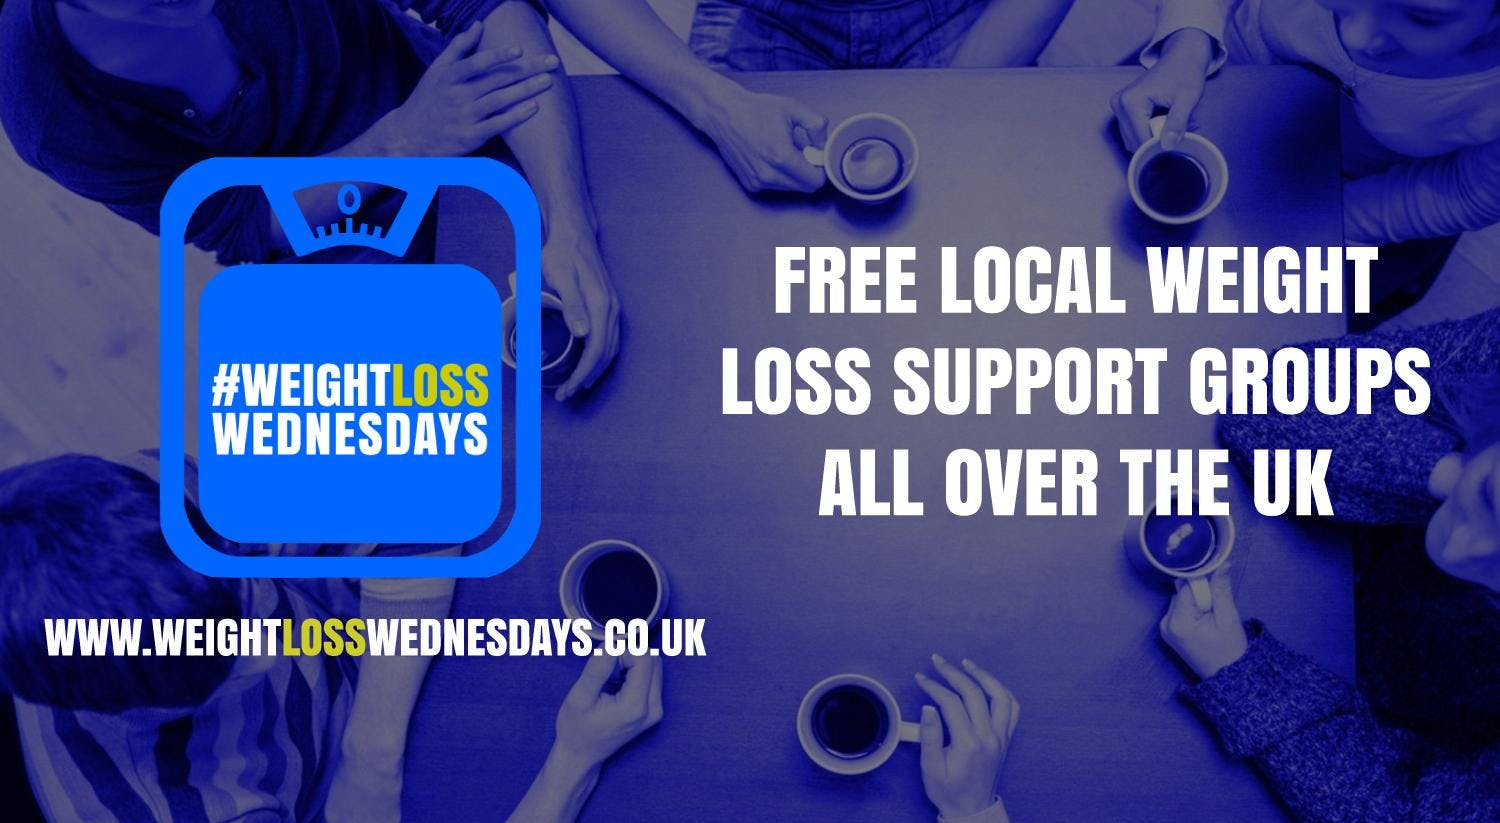 WEIGHT LOSS WEDNESDAYS! Free weekly support group in Ilkley